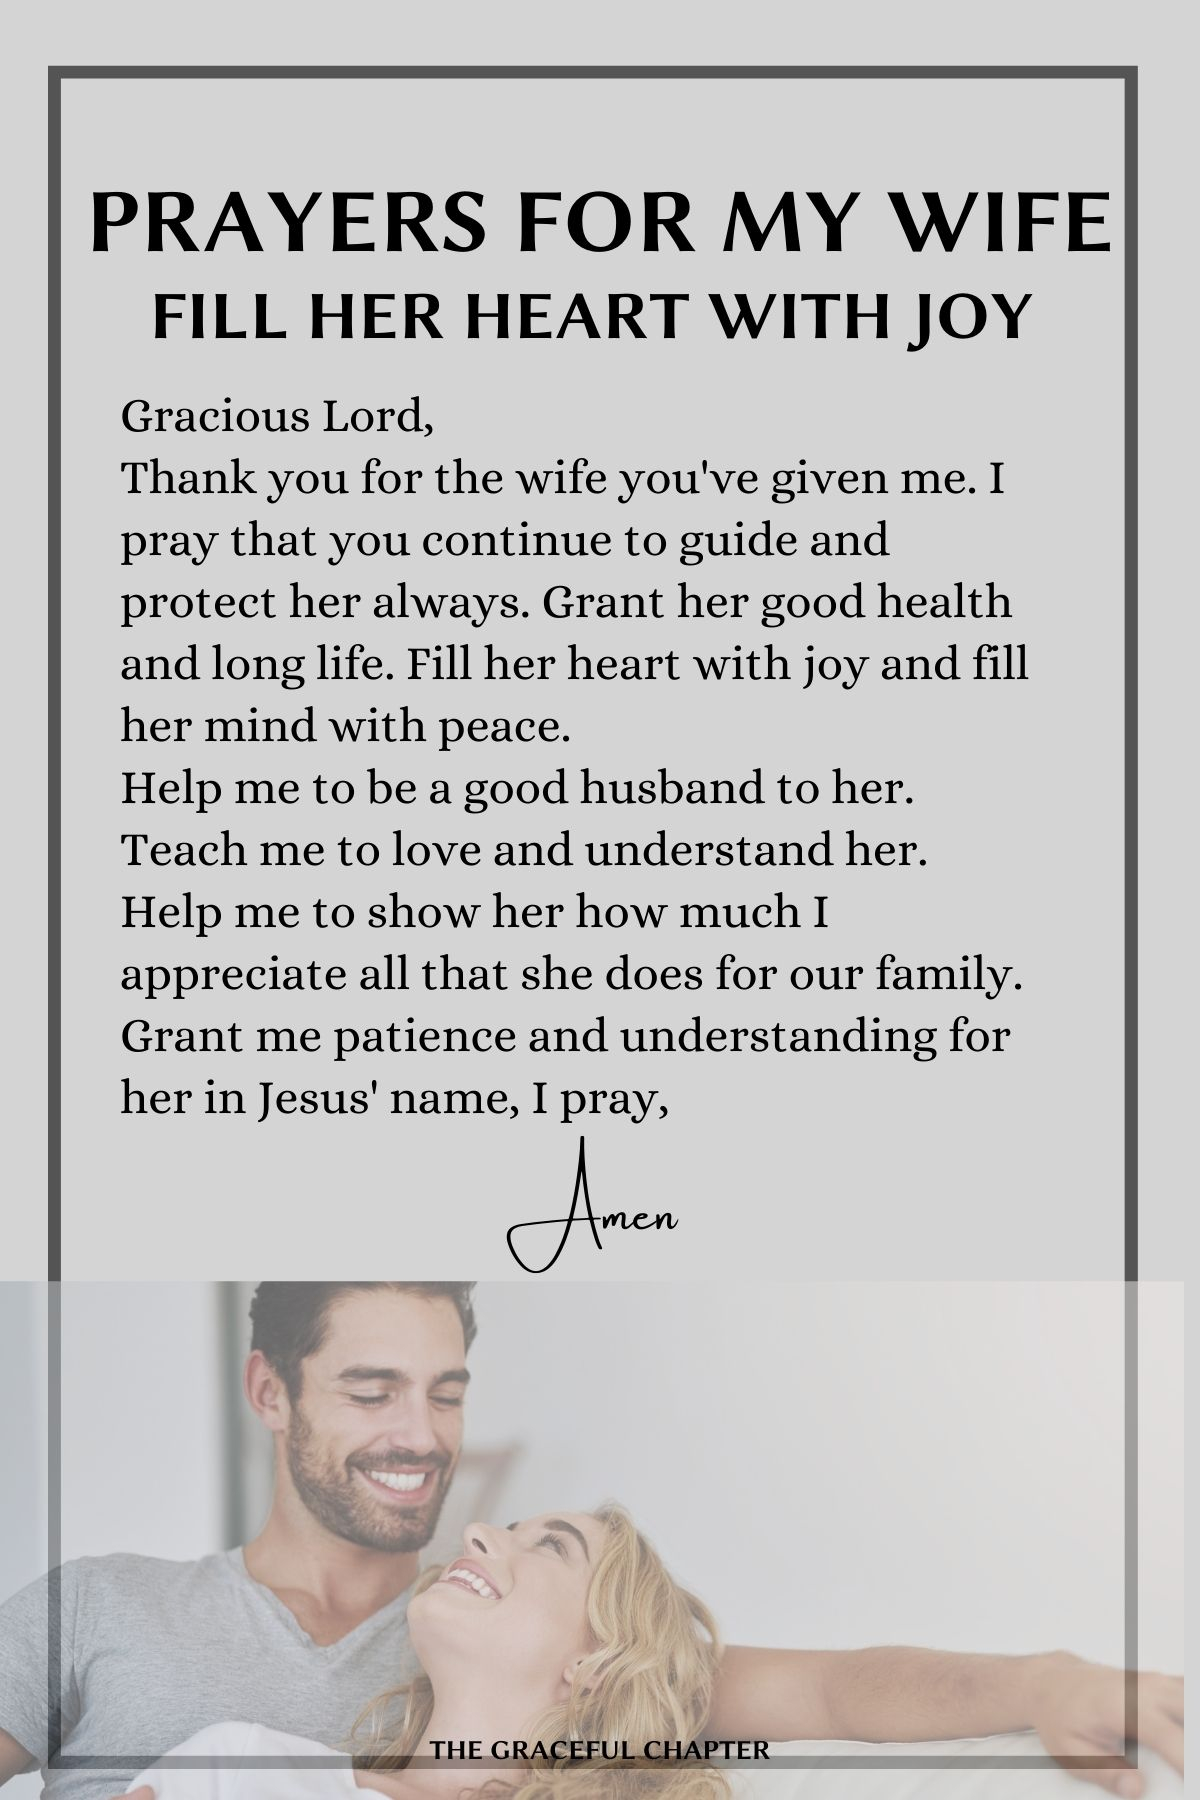 Prayers for your wife - Fill her heart with joy